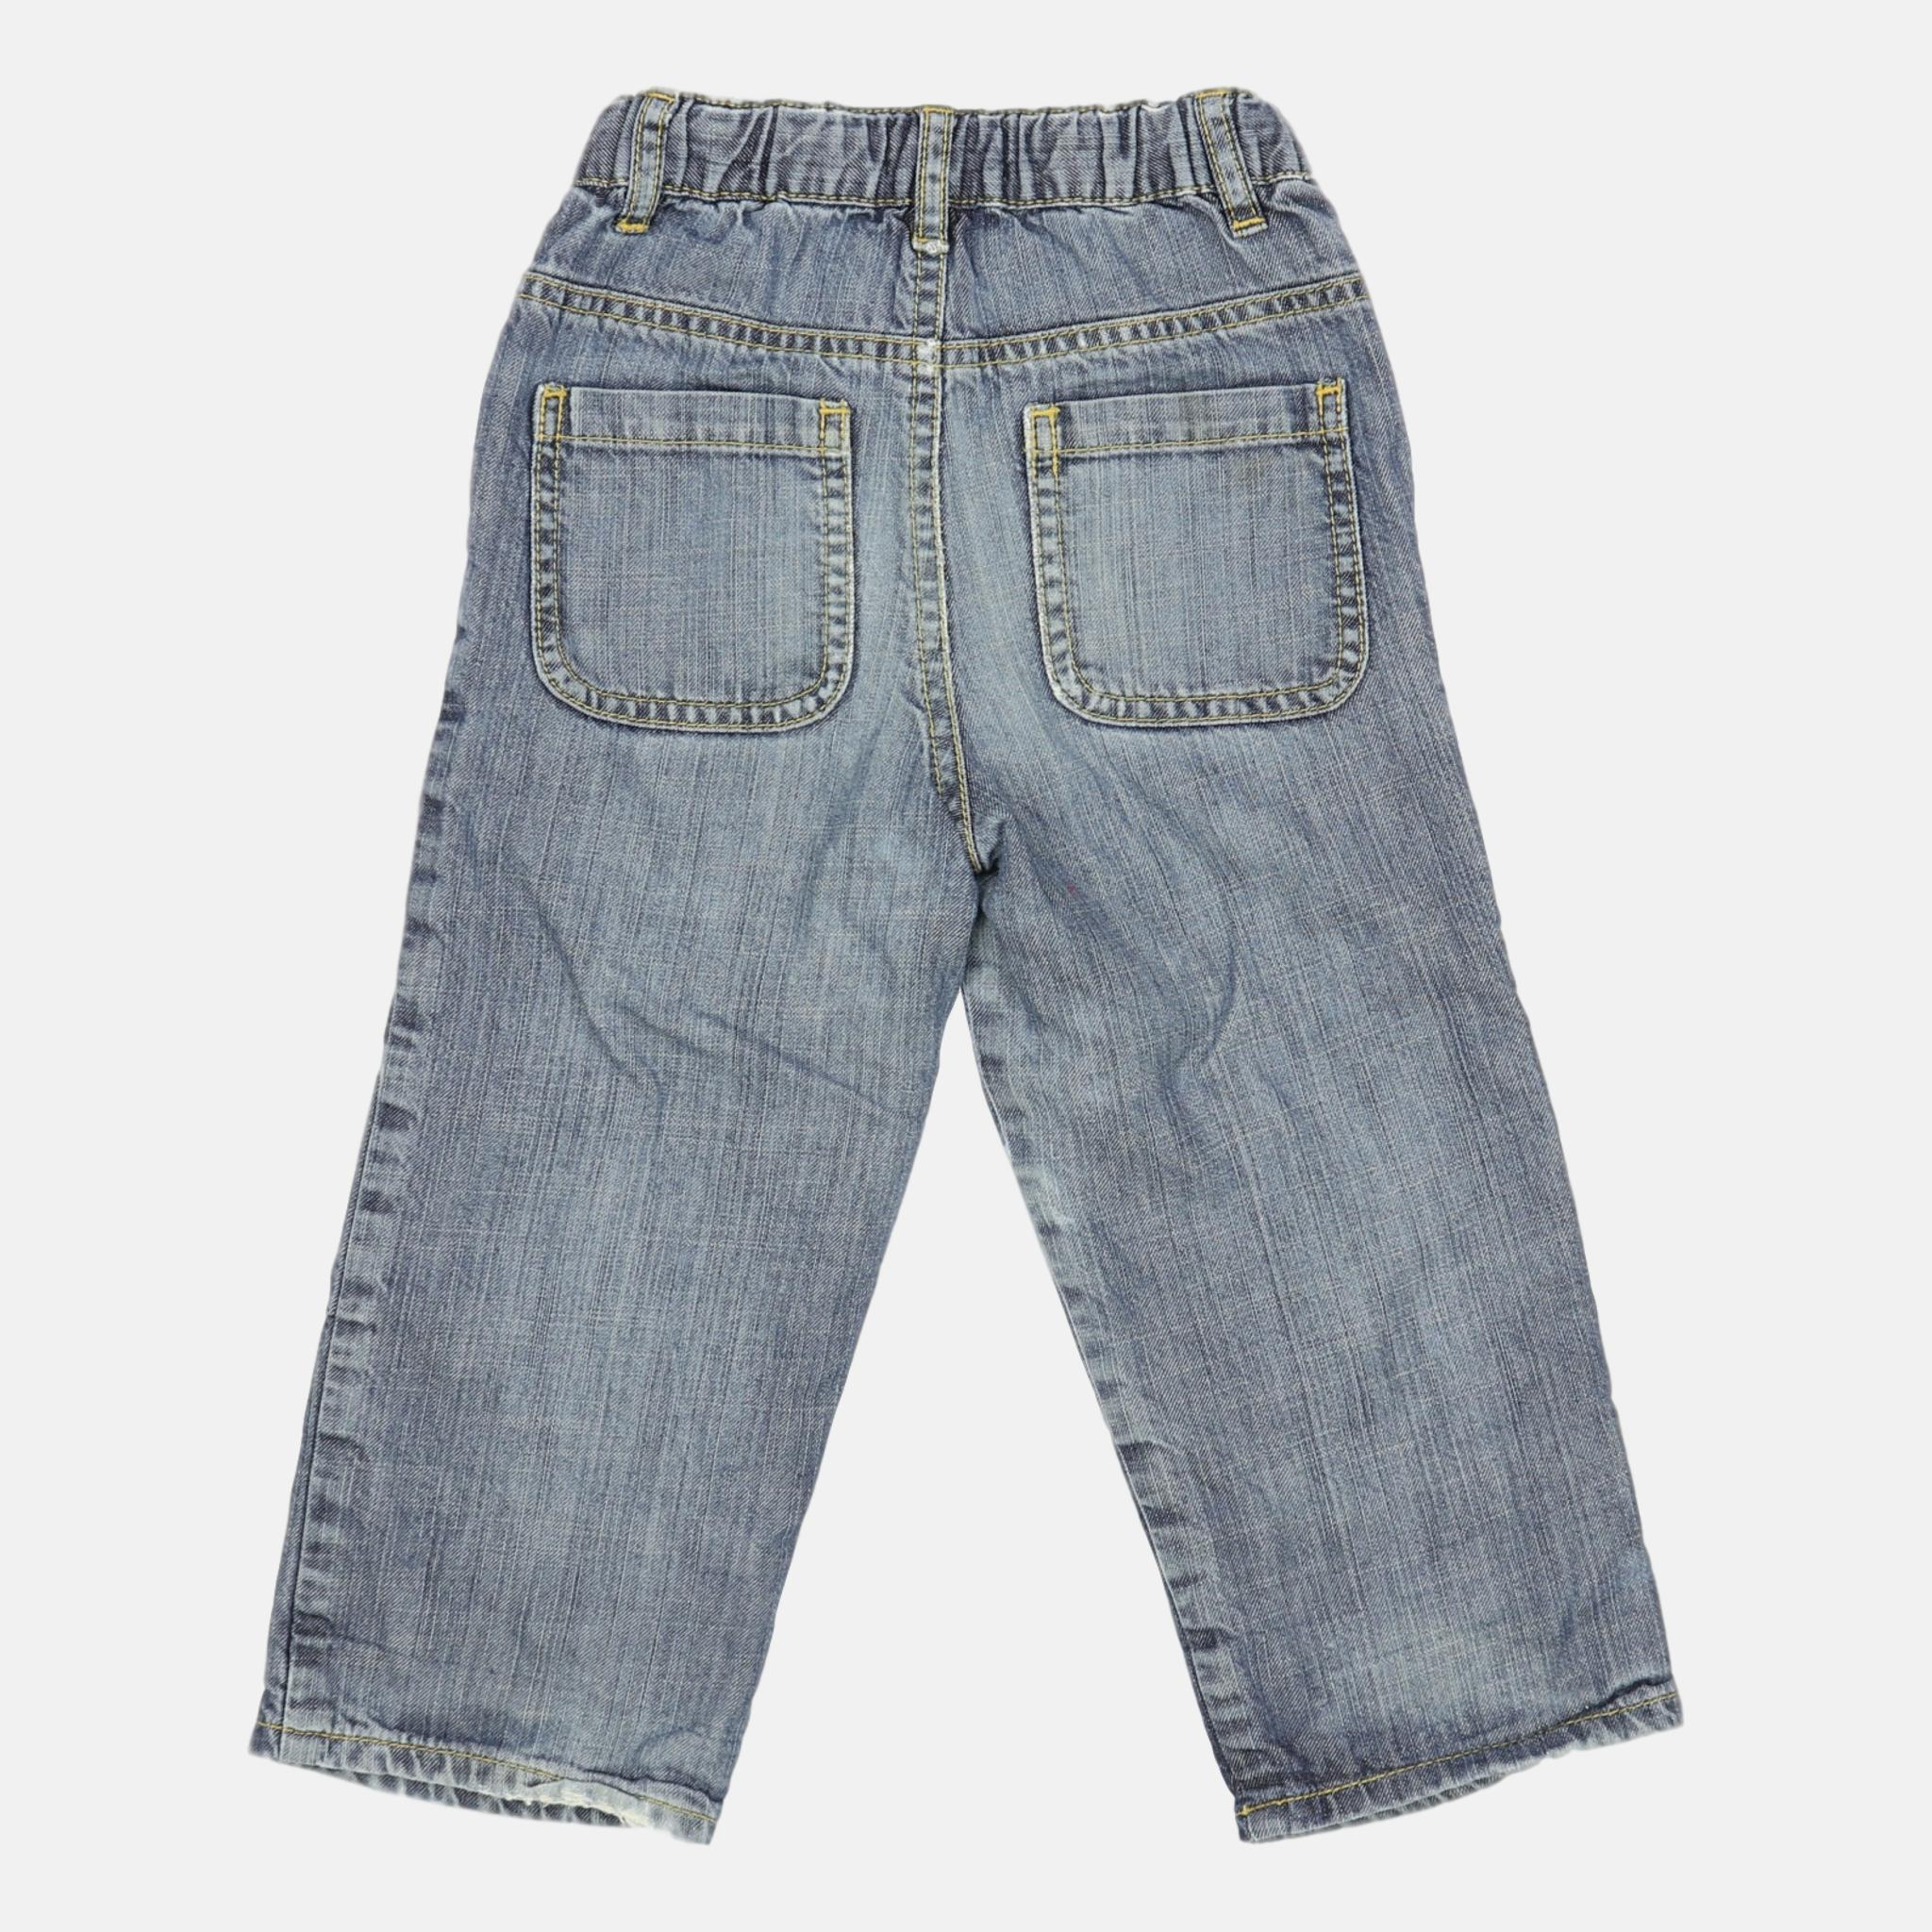 Jeans, 18-24 Months